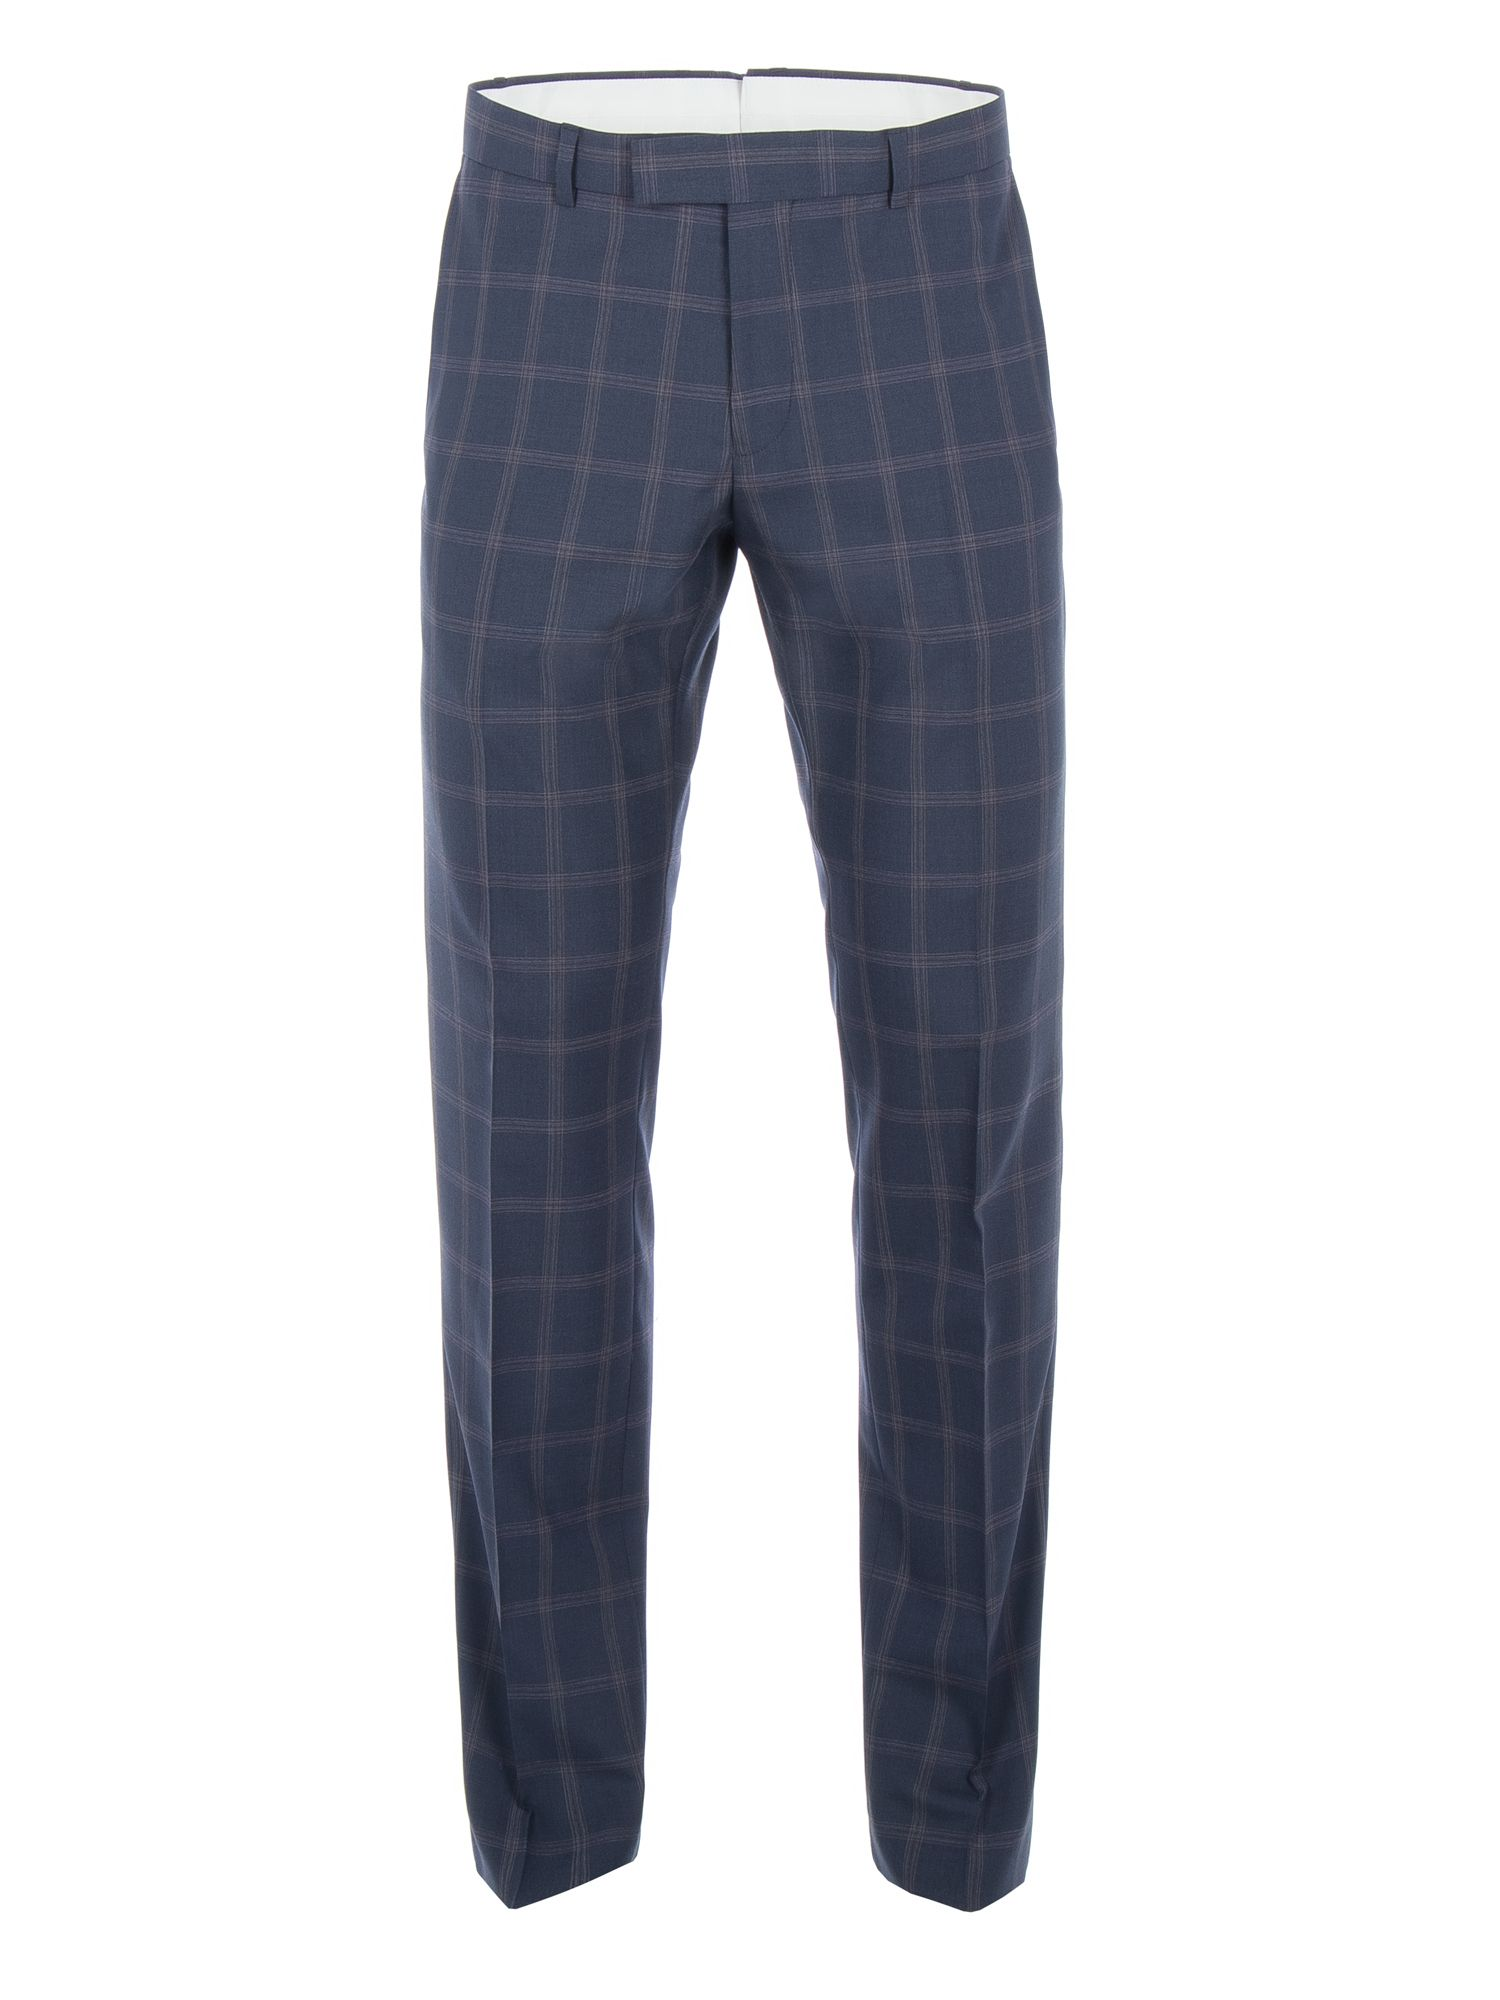 Men's Racing Green Amport Navy Check Suit Trouser, Navy